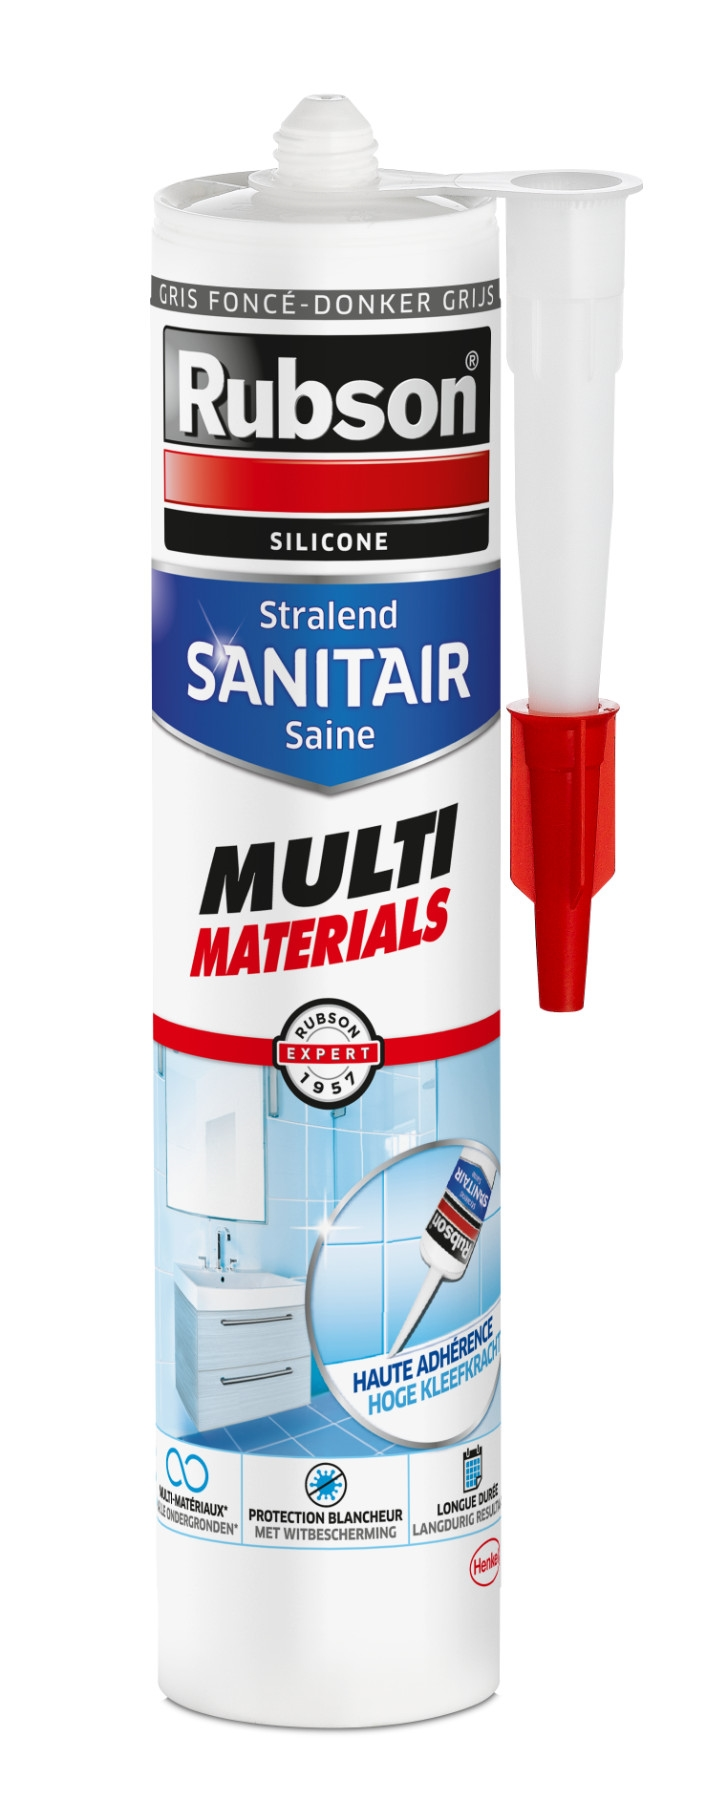 RUBSON SAN MULTI MAT GR 280ML  RUBSON SAN. MULTI MATERIALSDO